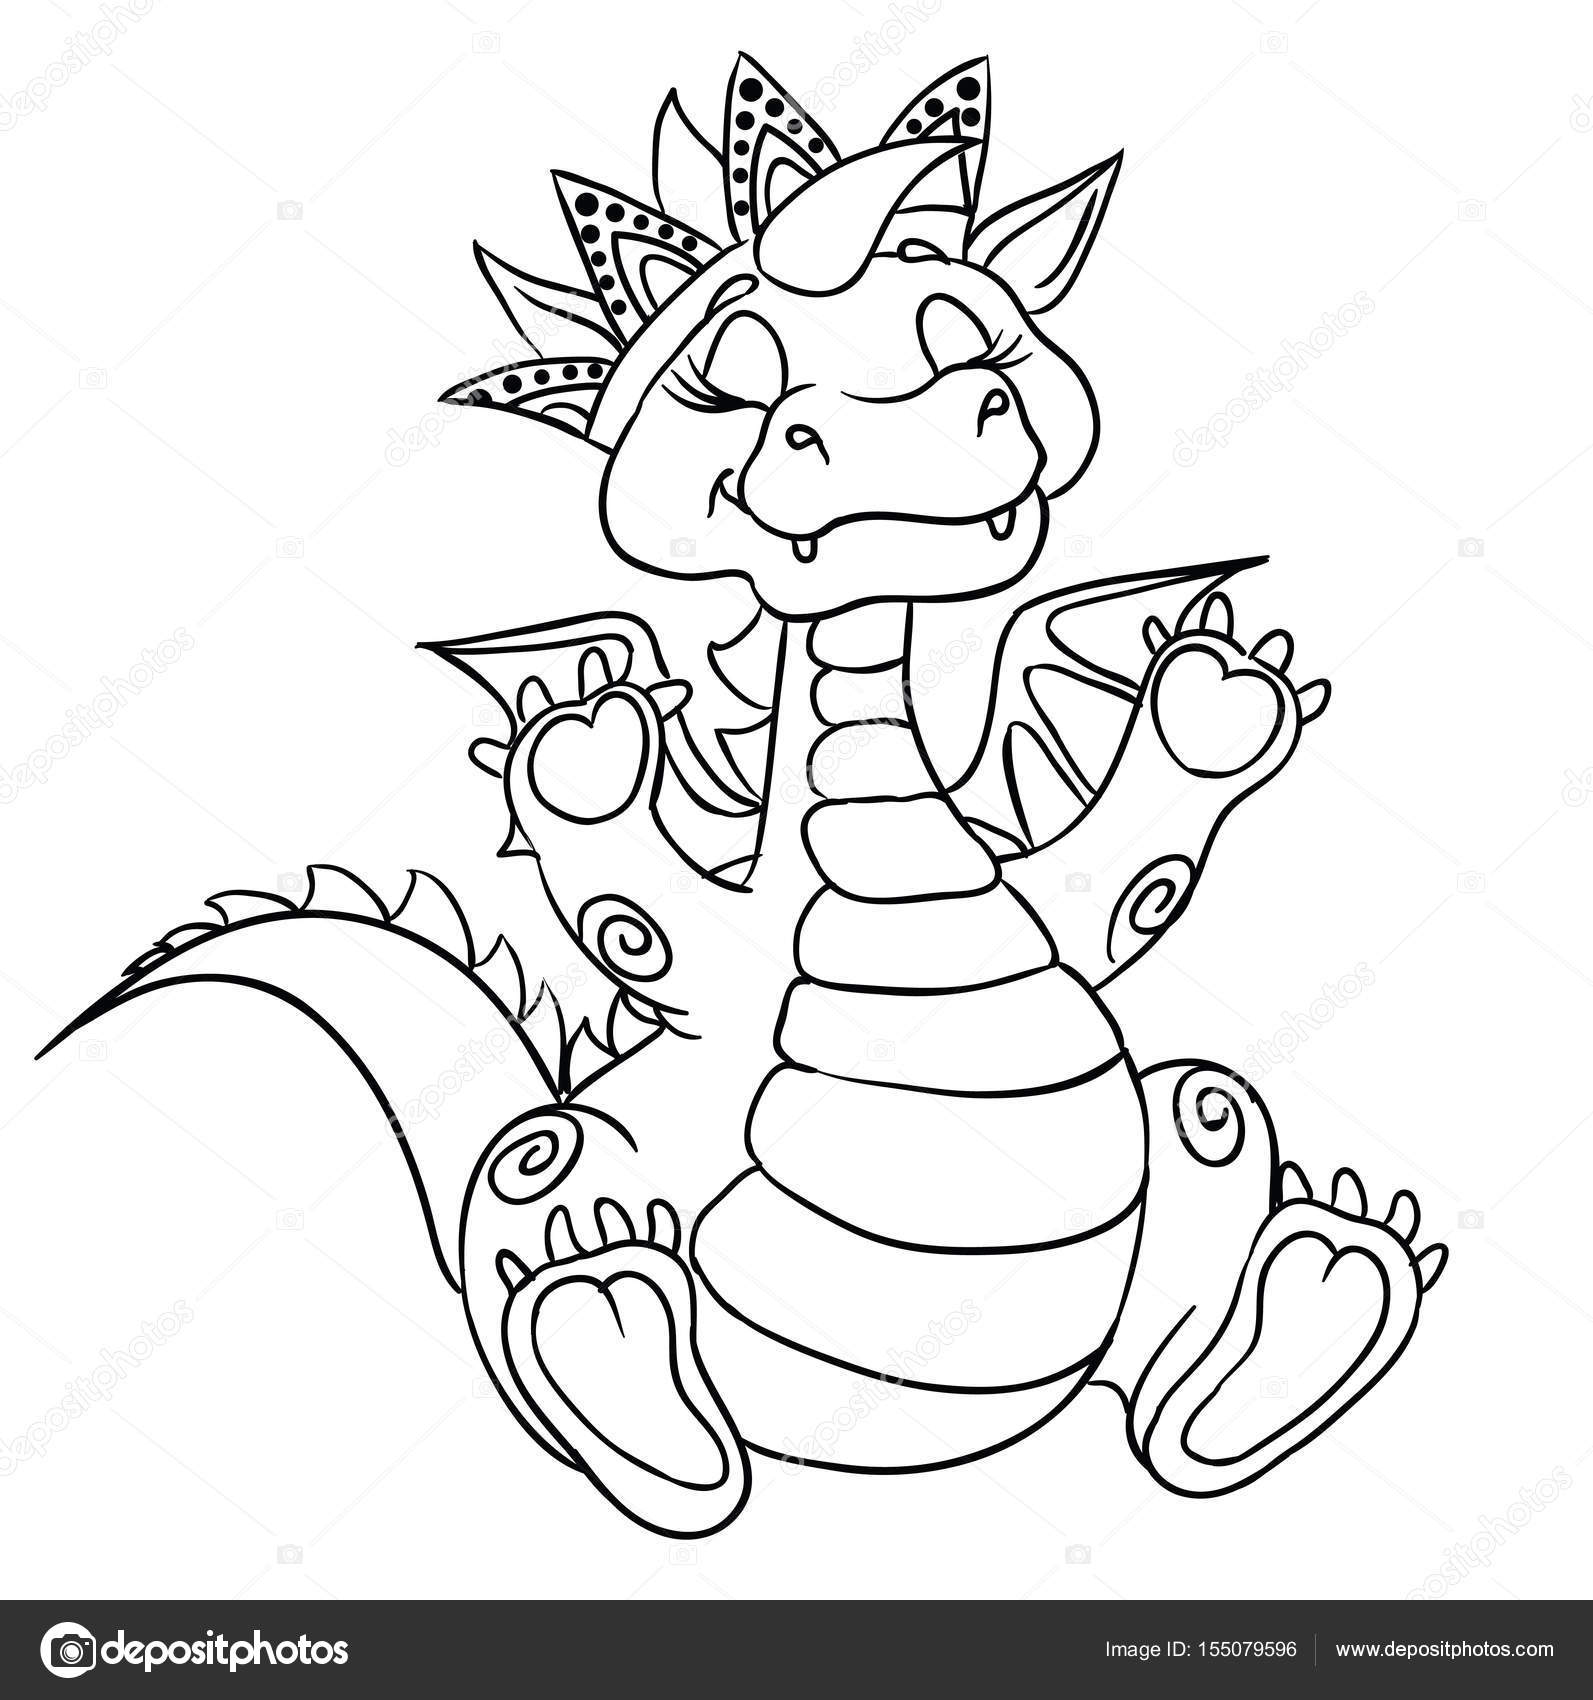 Dragon Kroon Kleurplaat Stockvector C Efoxly 155079596